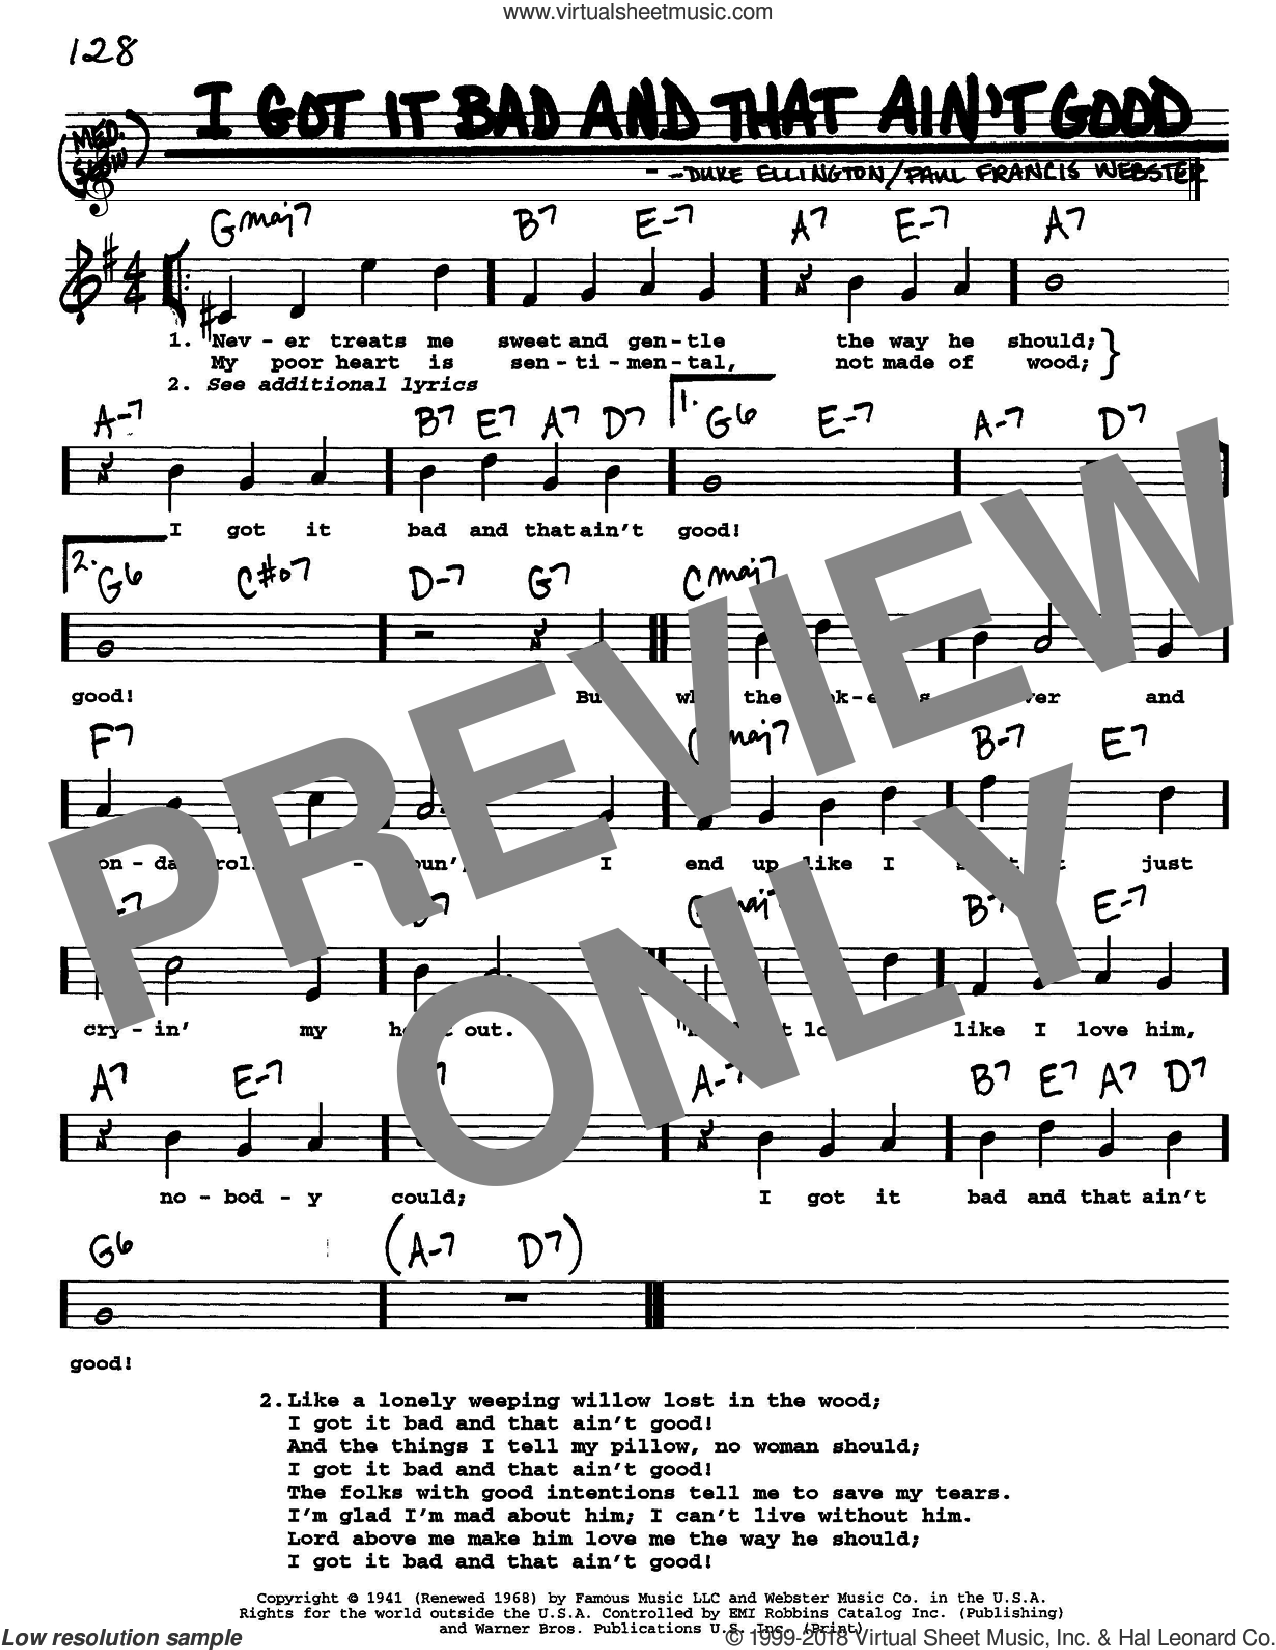 I Got It Bad And That Ain't Good sheet music for voice and other instruments  by Duke Ellington and Paul Francis Webster, intermediate. Score Image Preview.